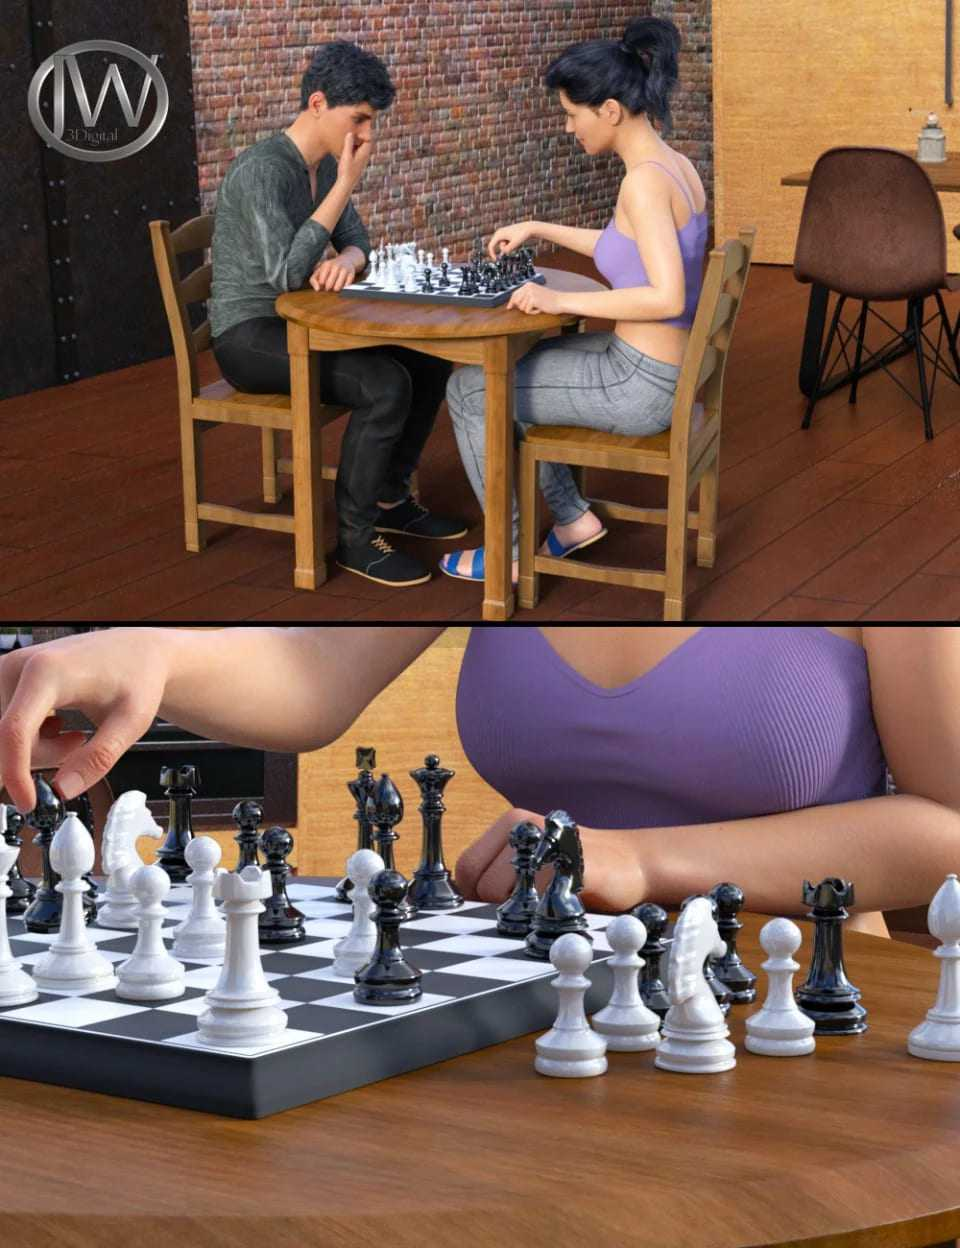 JW Chess Props and Poses for Genesis 8